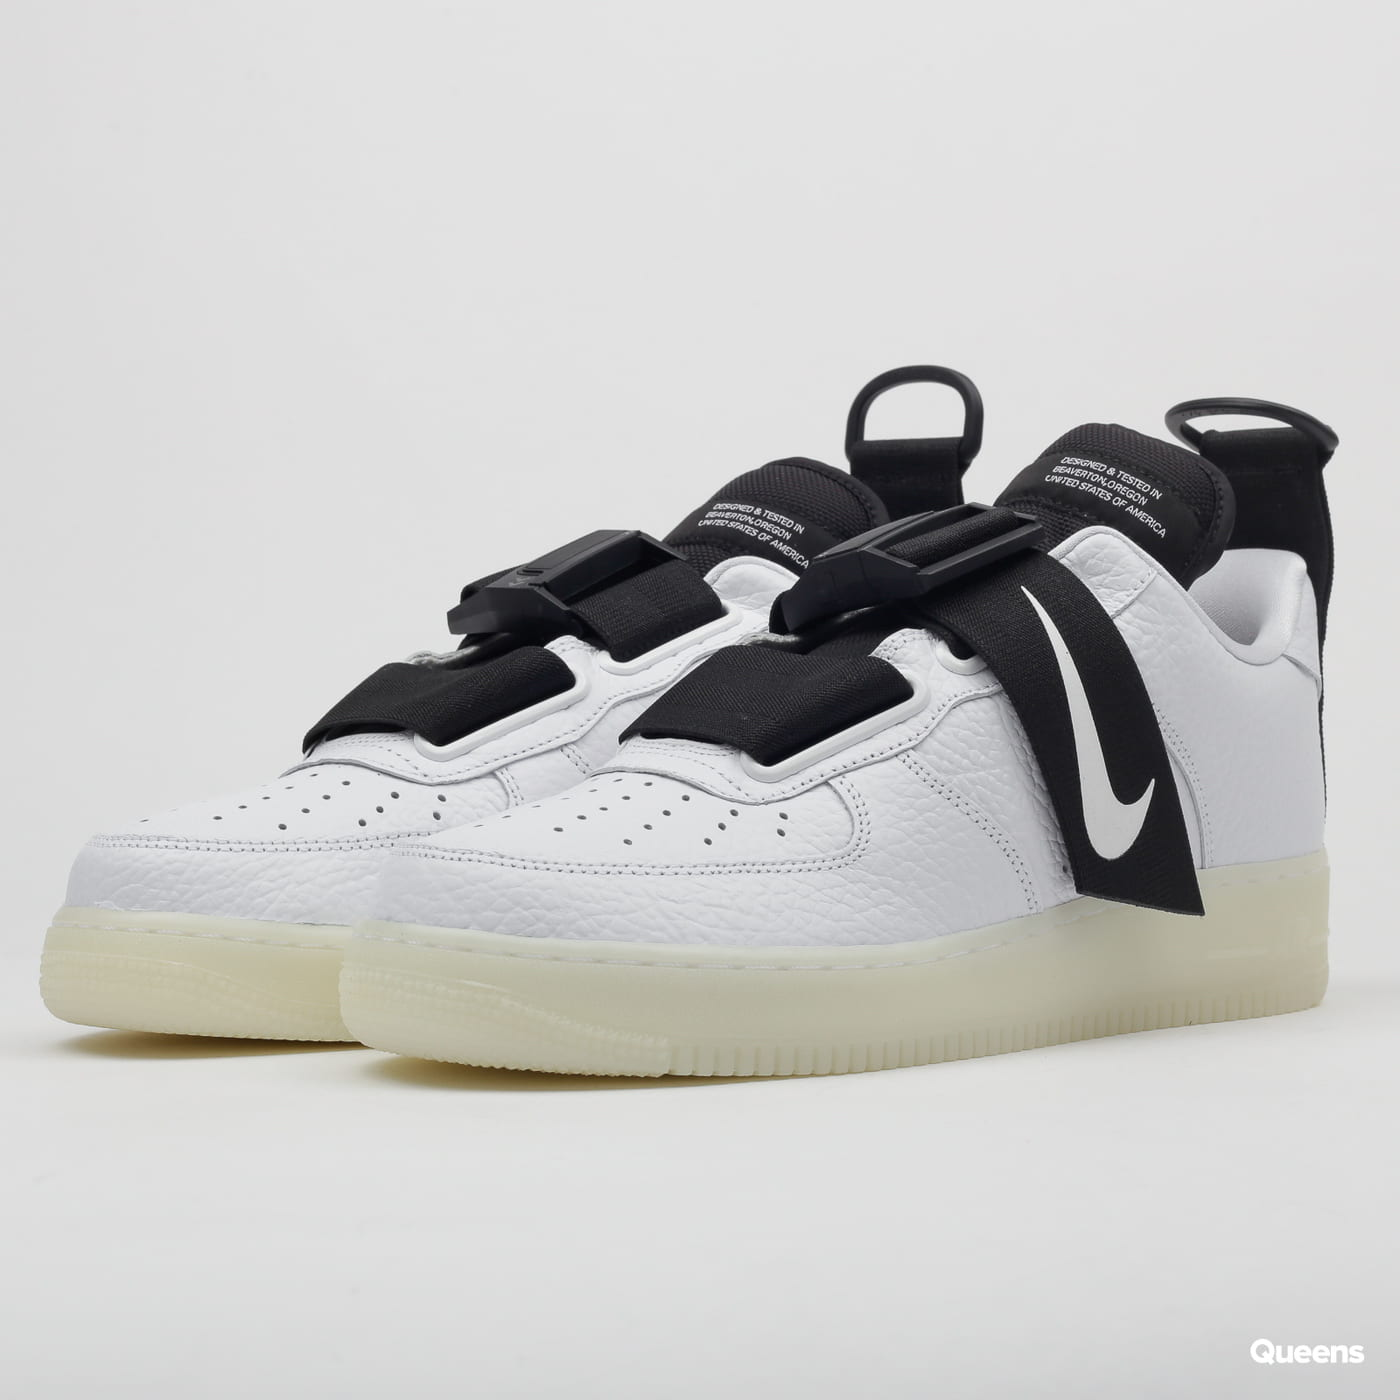 7753166d81f15 Sneakers Nike Air Force 1 Utility QS white / black (AV6247-100) – Queens 💚